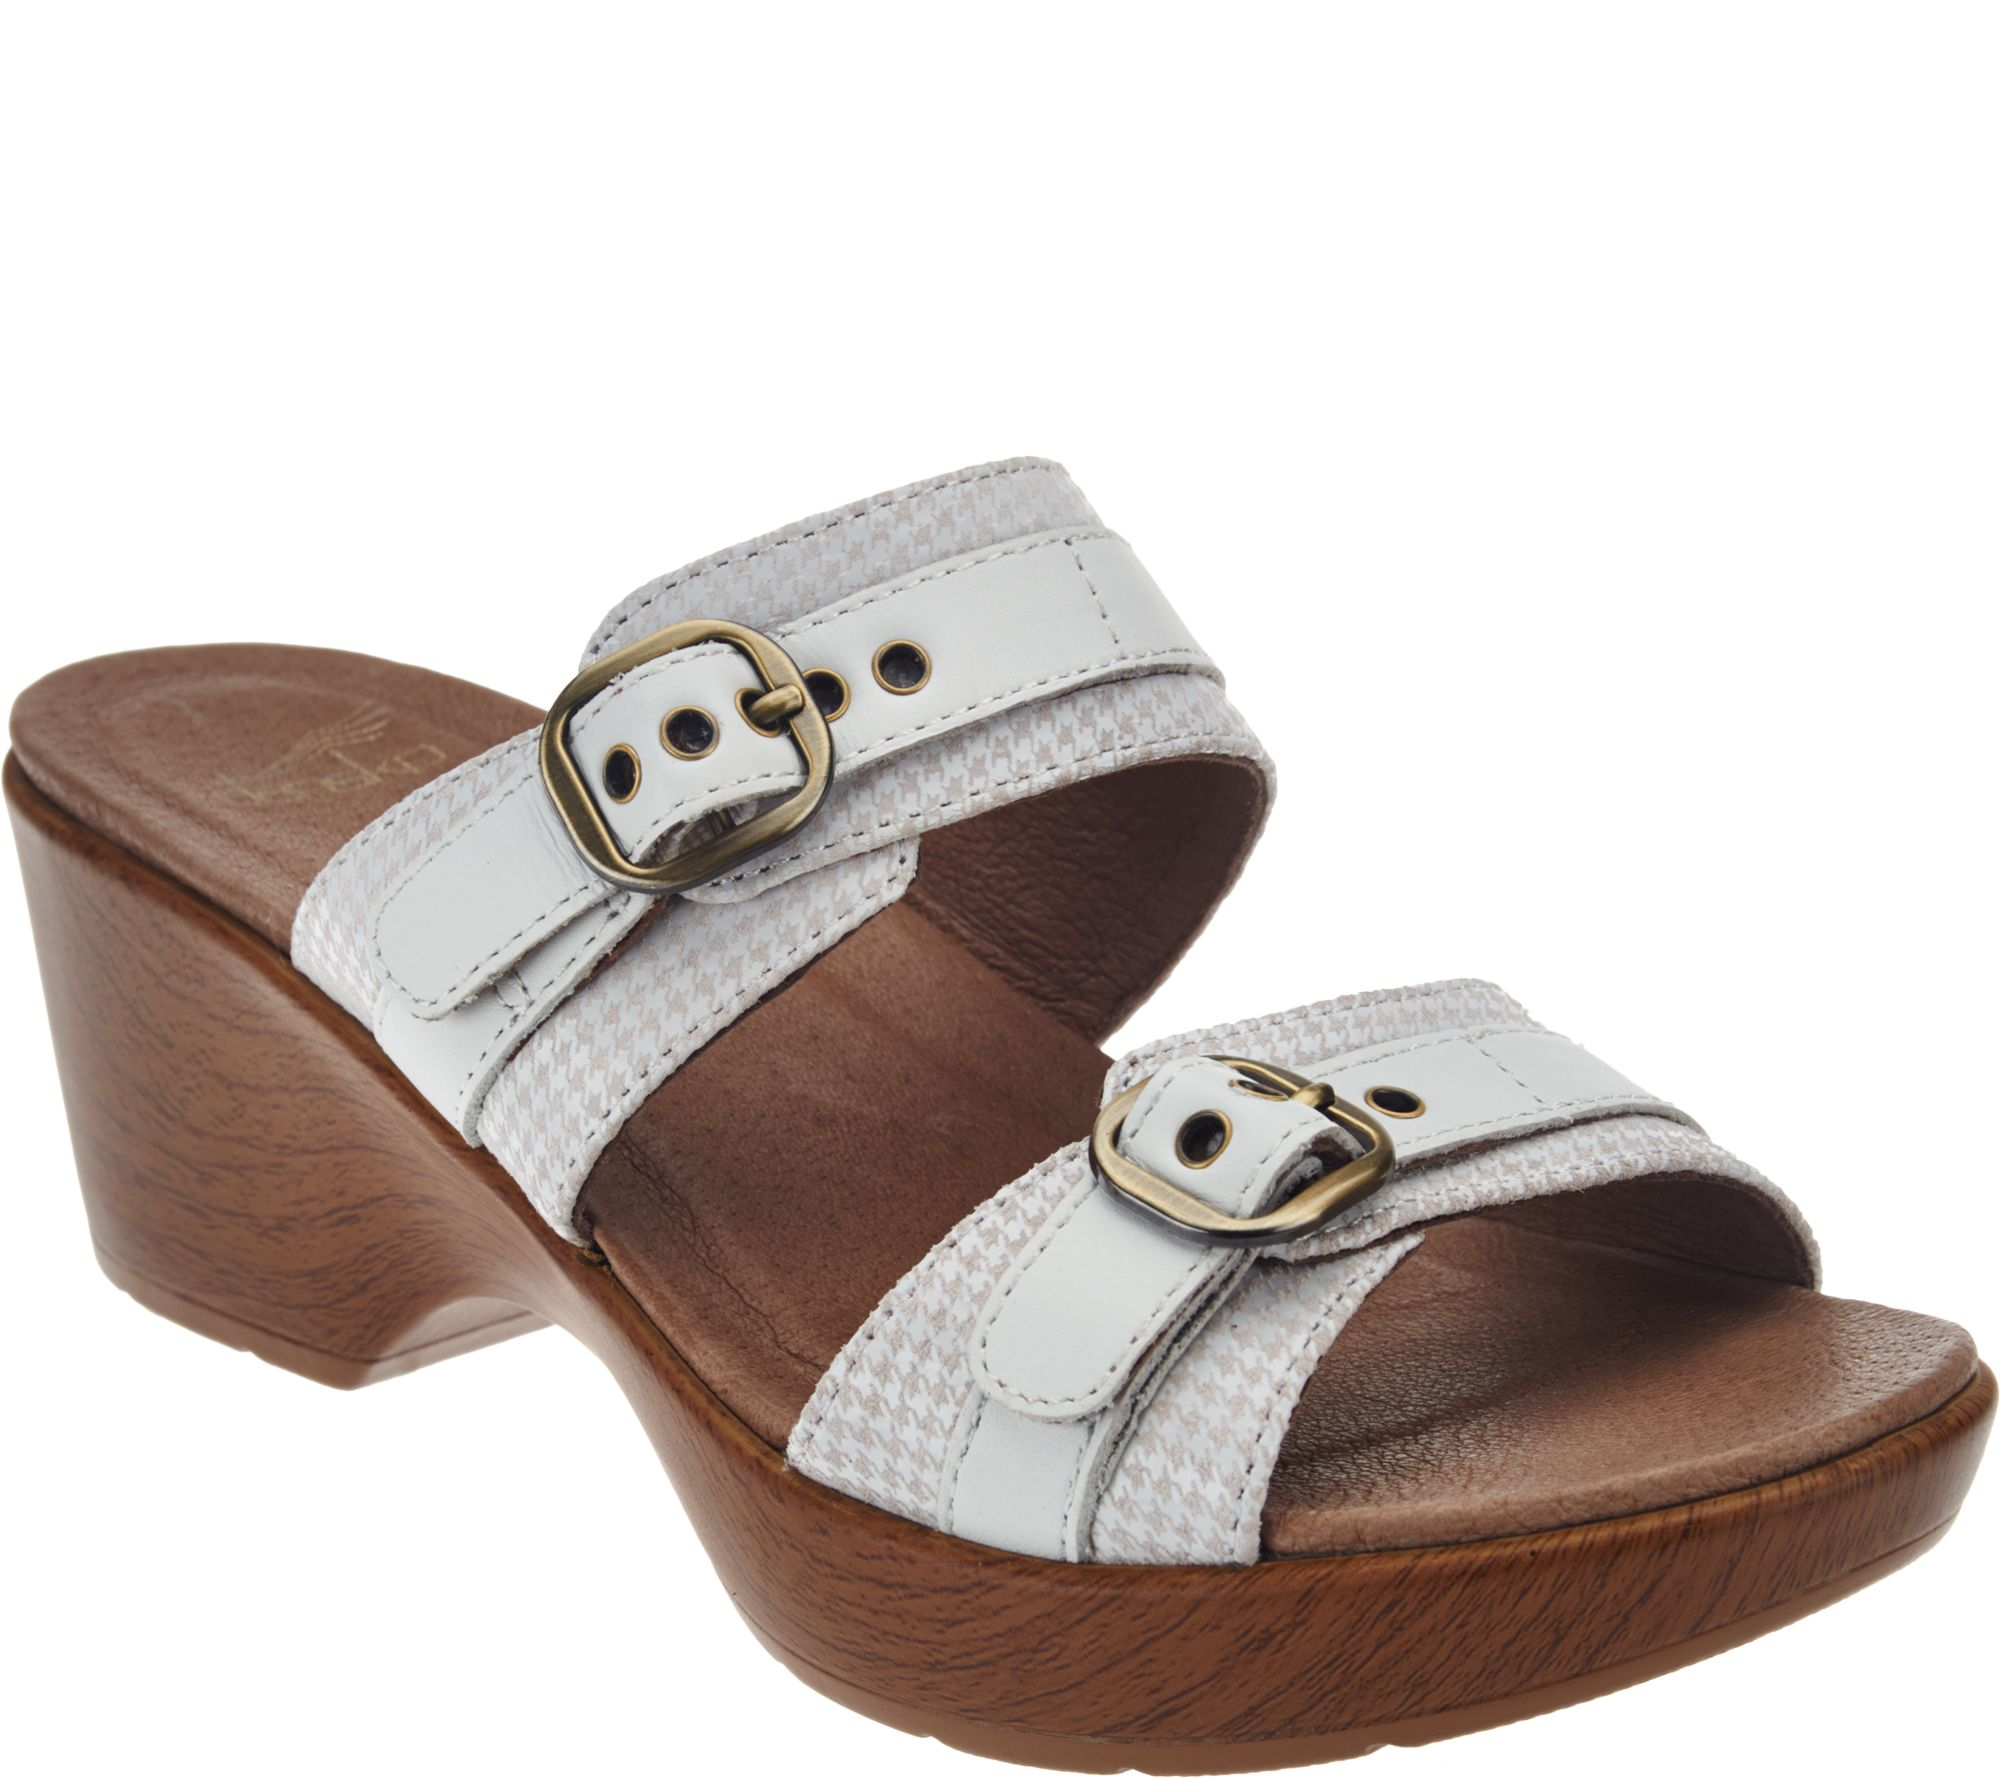 Dansko Leather Double Strap Sandals With Buckles Jessie A274365